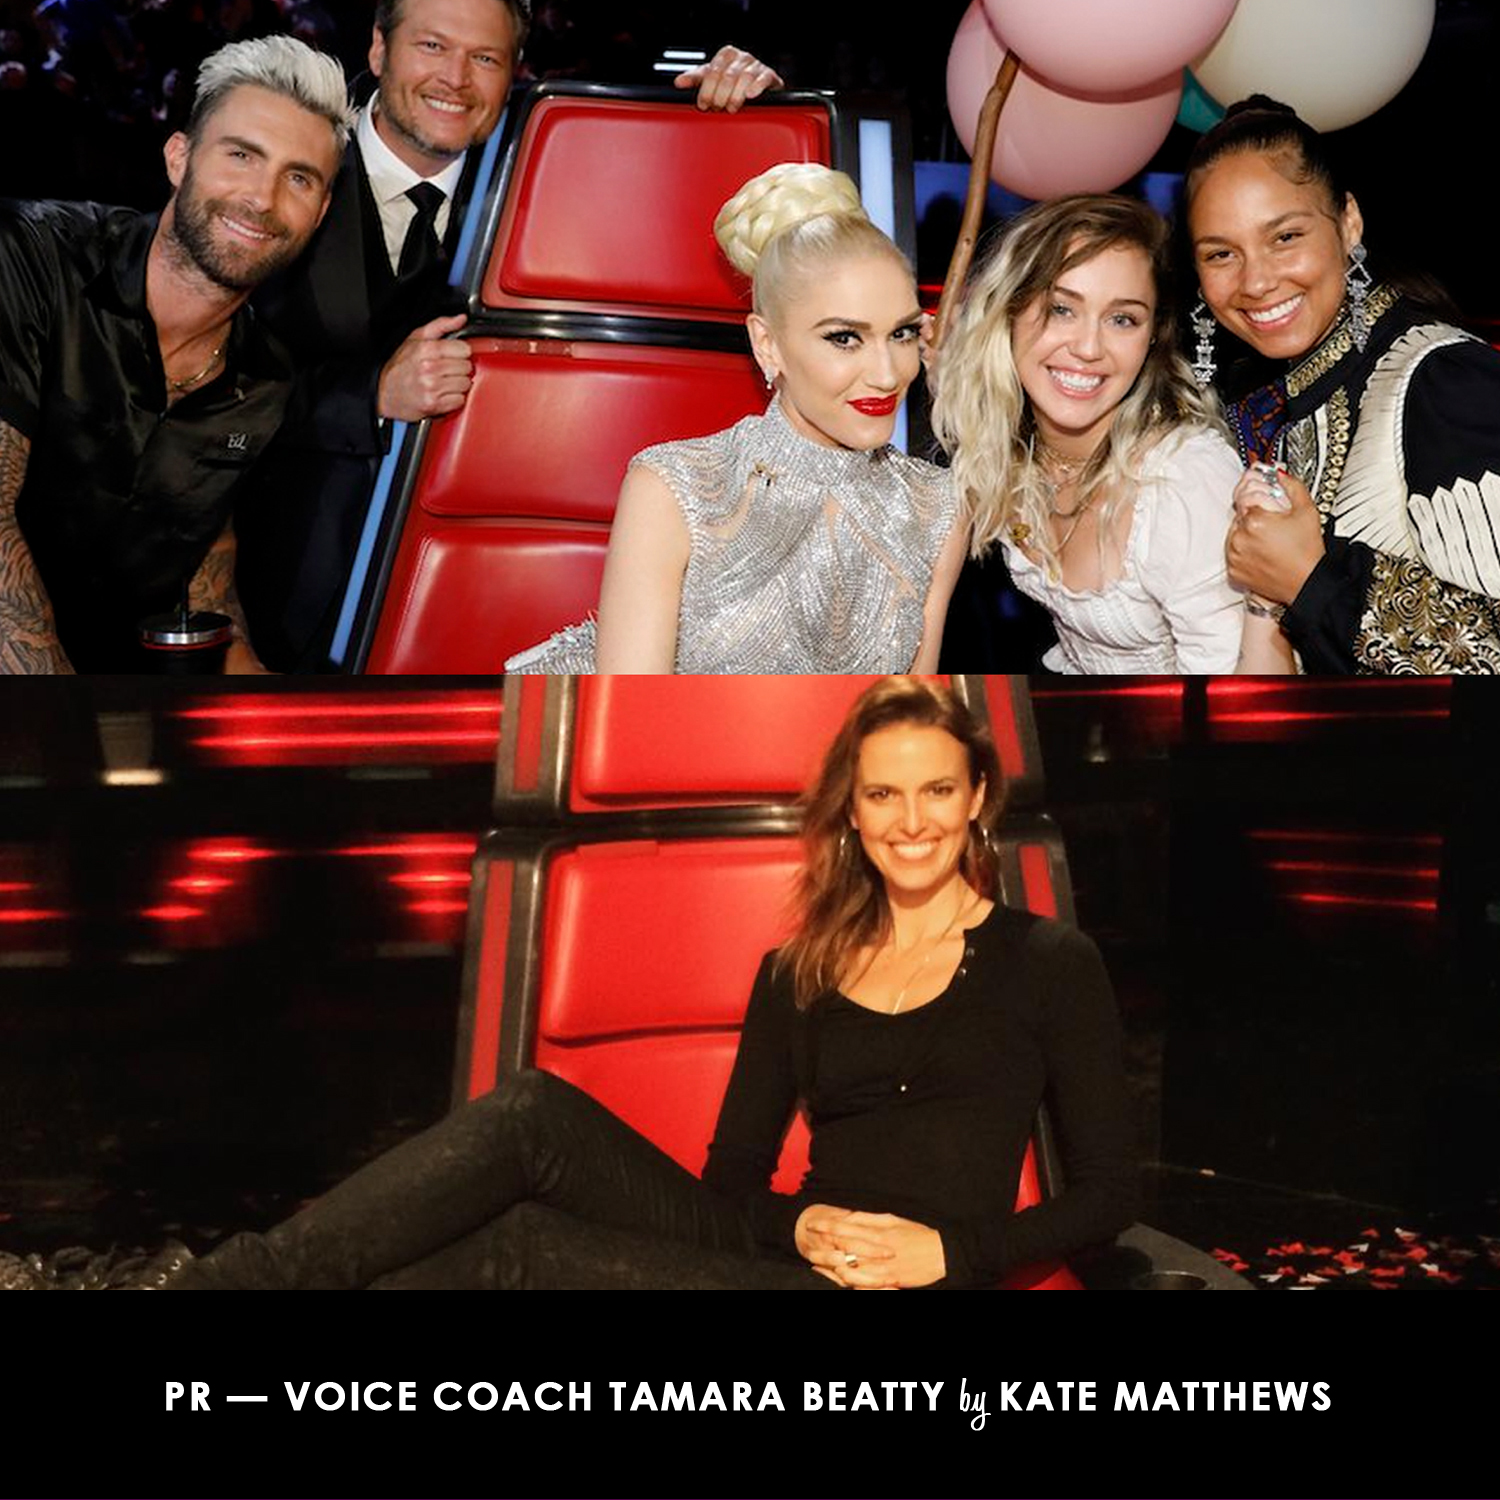 PR-VOICE-COACH-TAMARA-BEATTY-BY-KATE-MATTHEWS